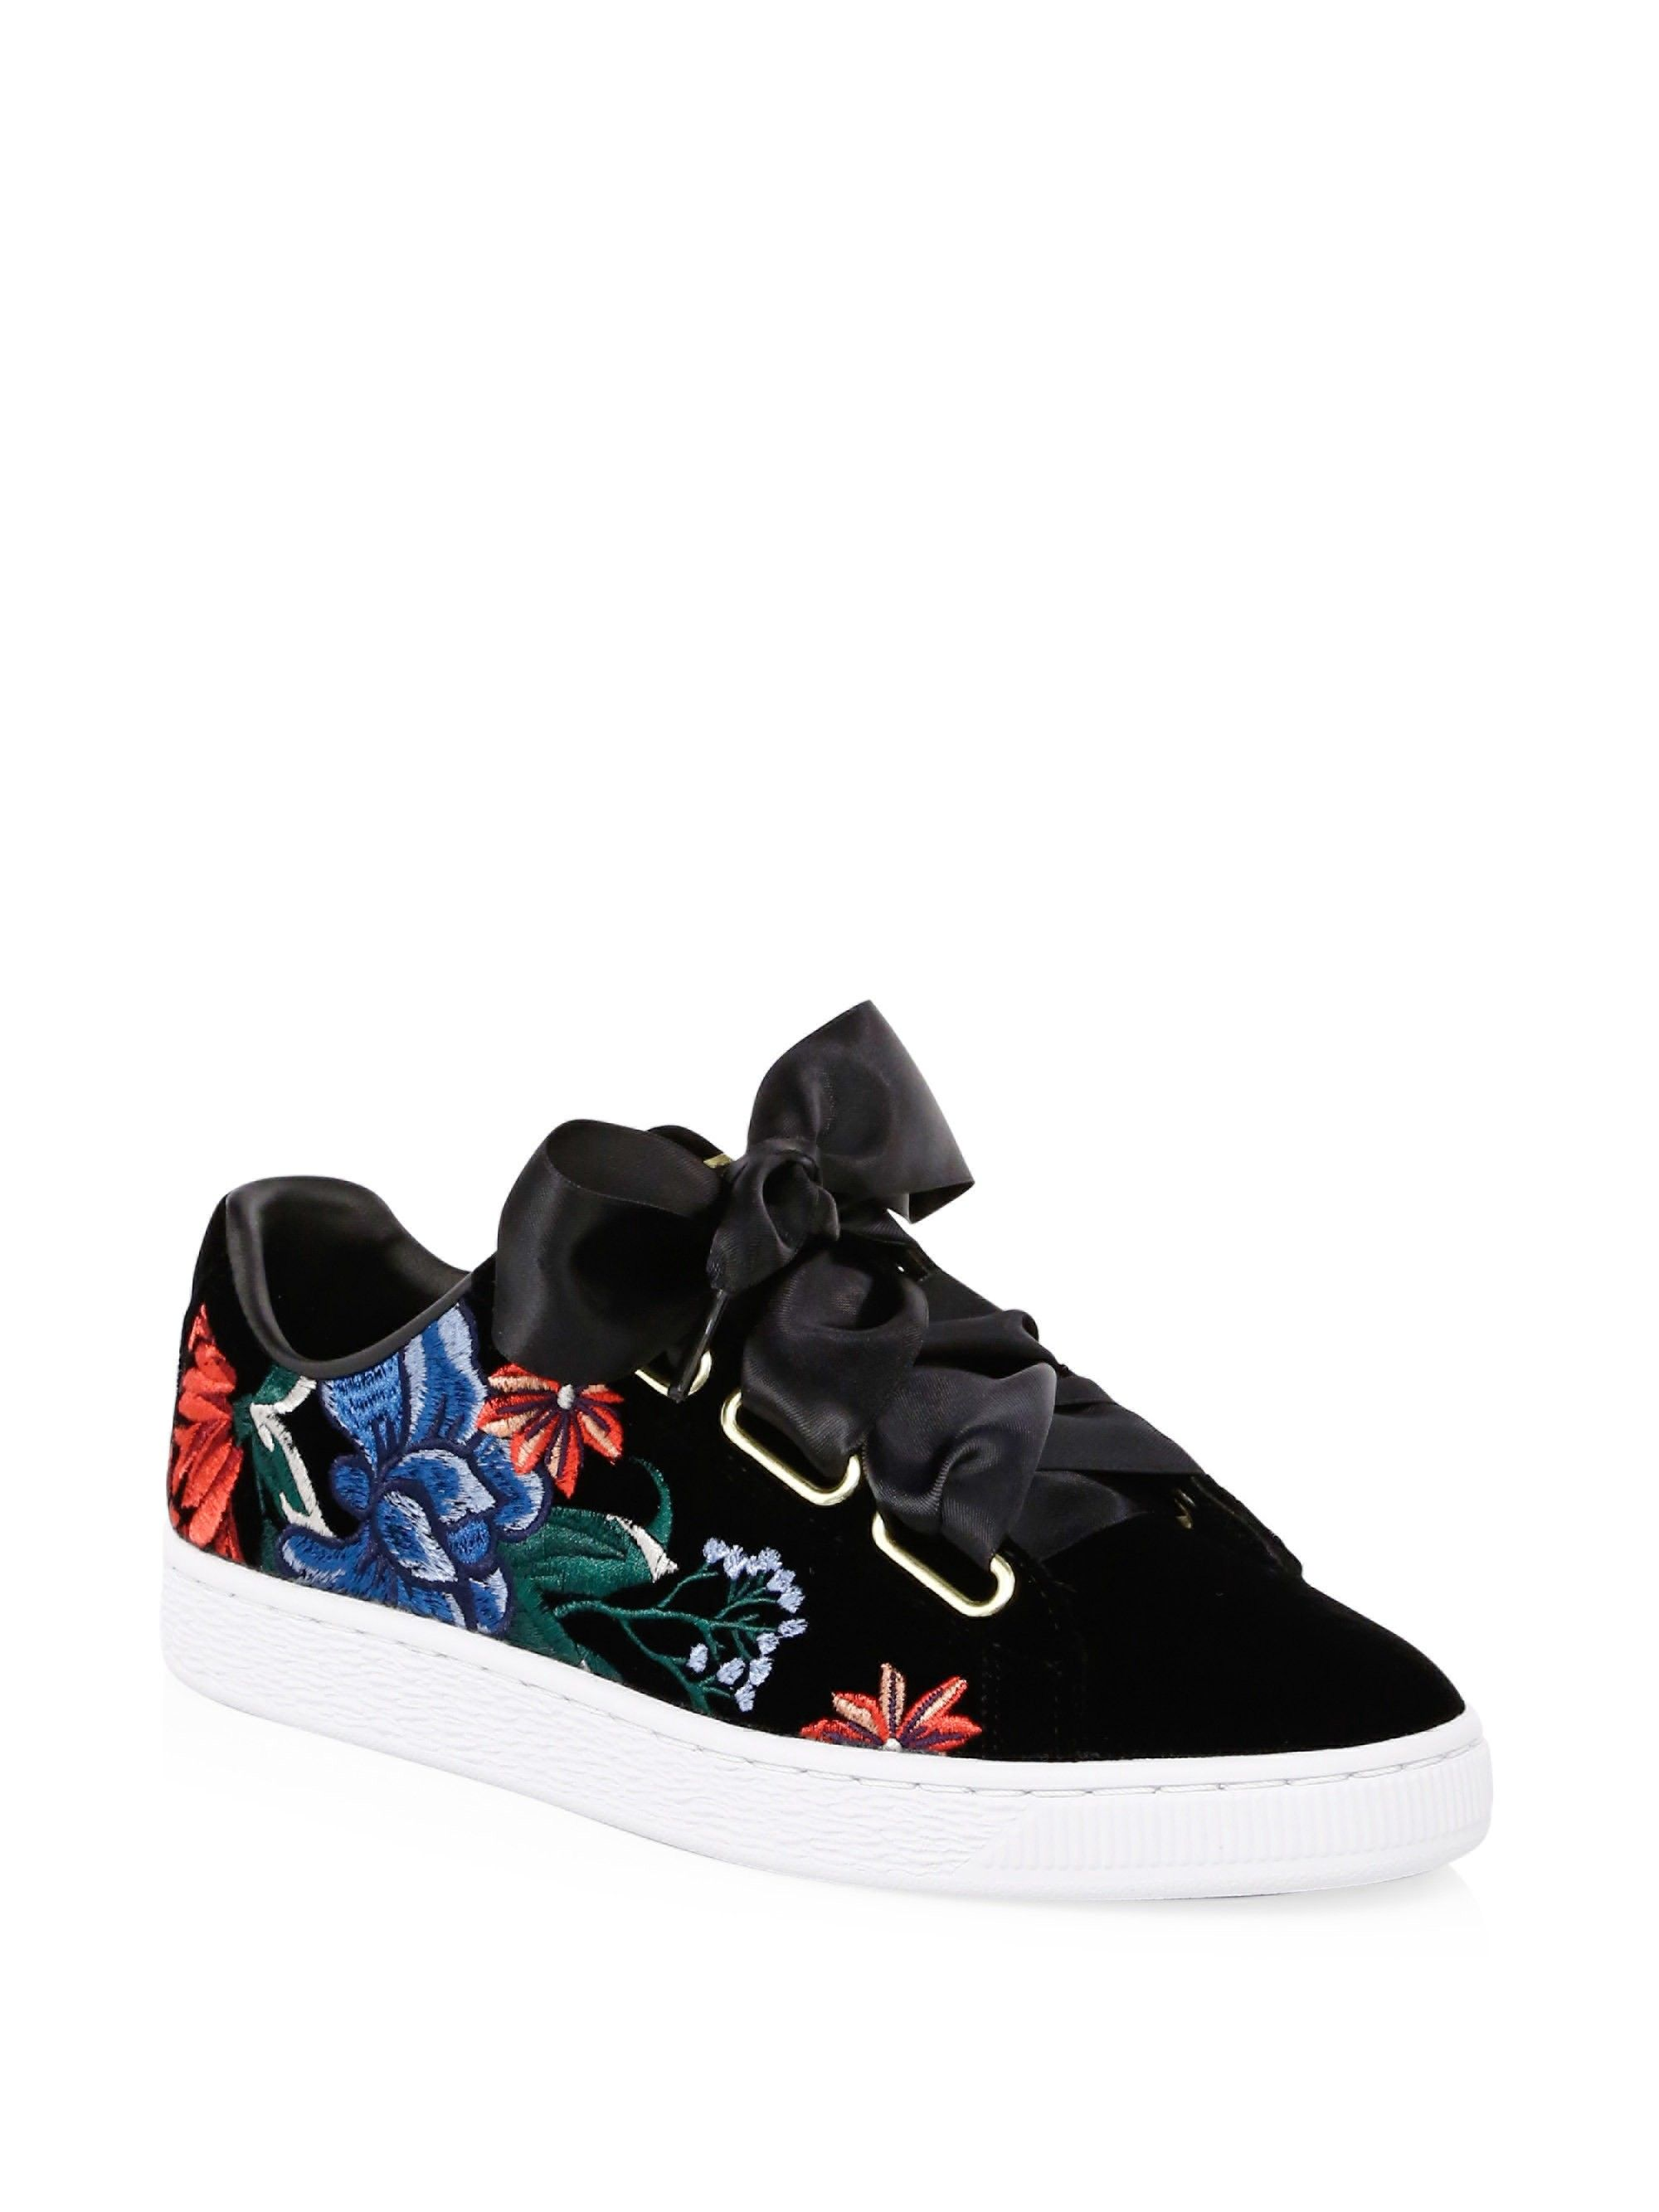 8841528141a Puma Embroidered Velvet Sneakers - Black 10.5